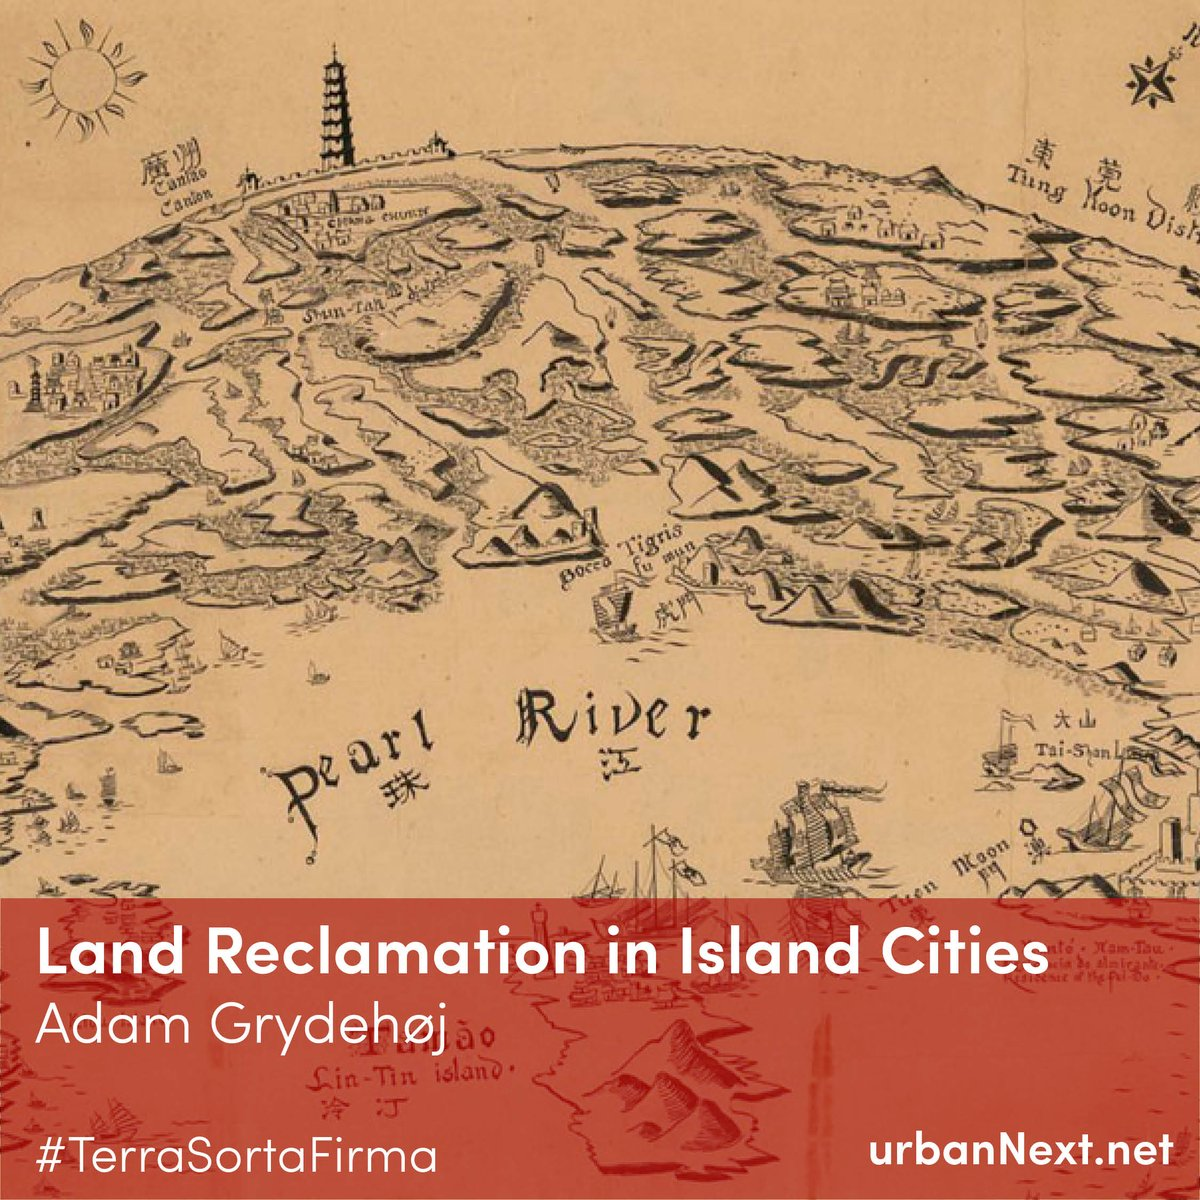 """""""Because many islands have been connected to the mainland through reclamation, we often fail to recognise island cities for what they are."""" ~ Read this insightful essay by Adam Grydehøj on the impact of land reclamation on public spaces at the link below!"""